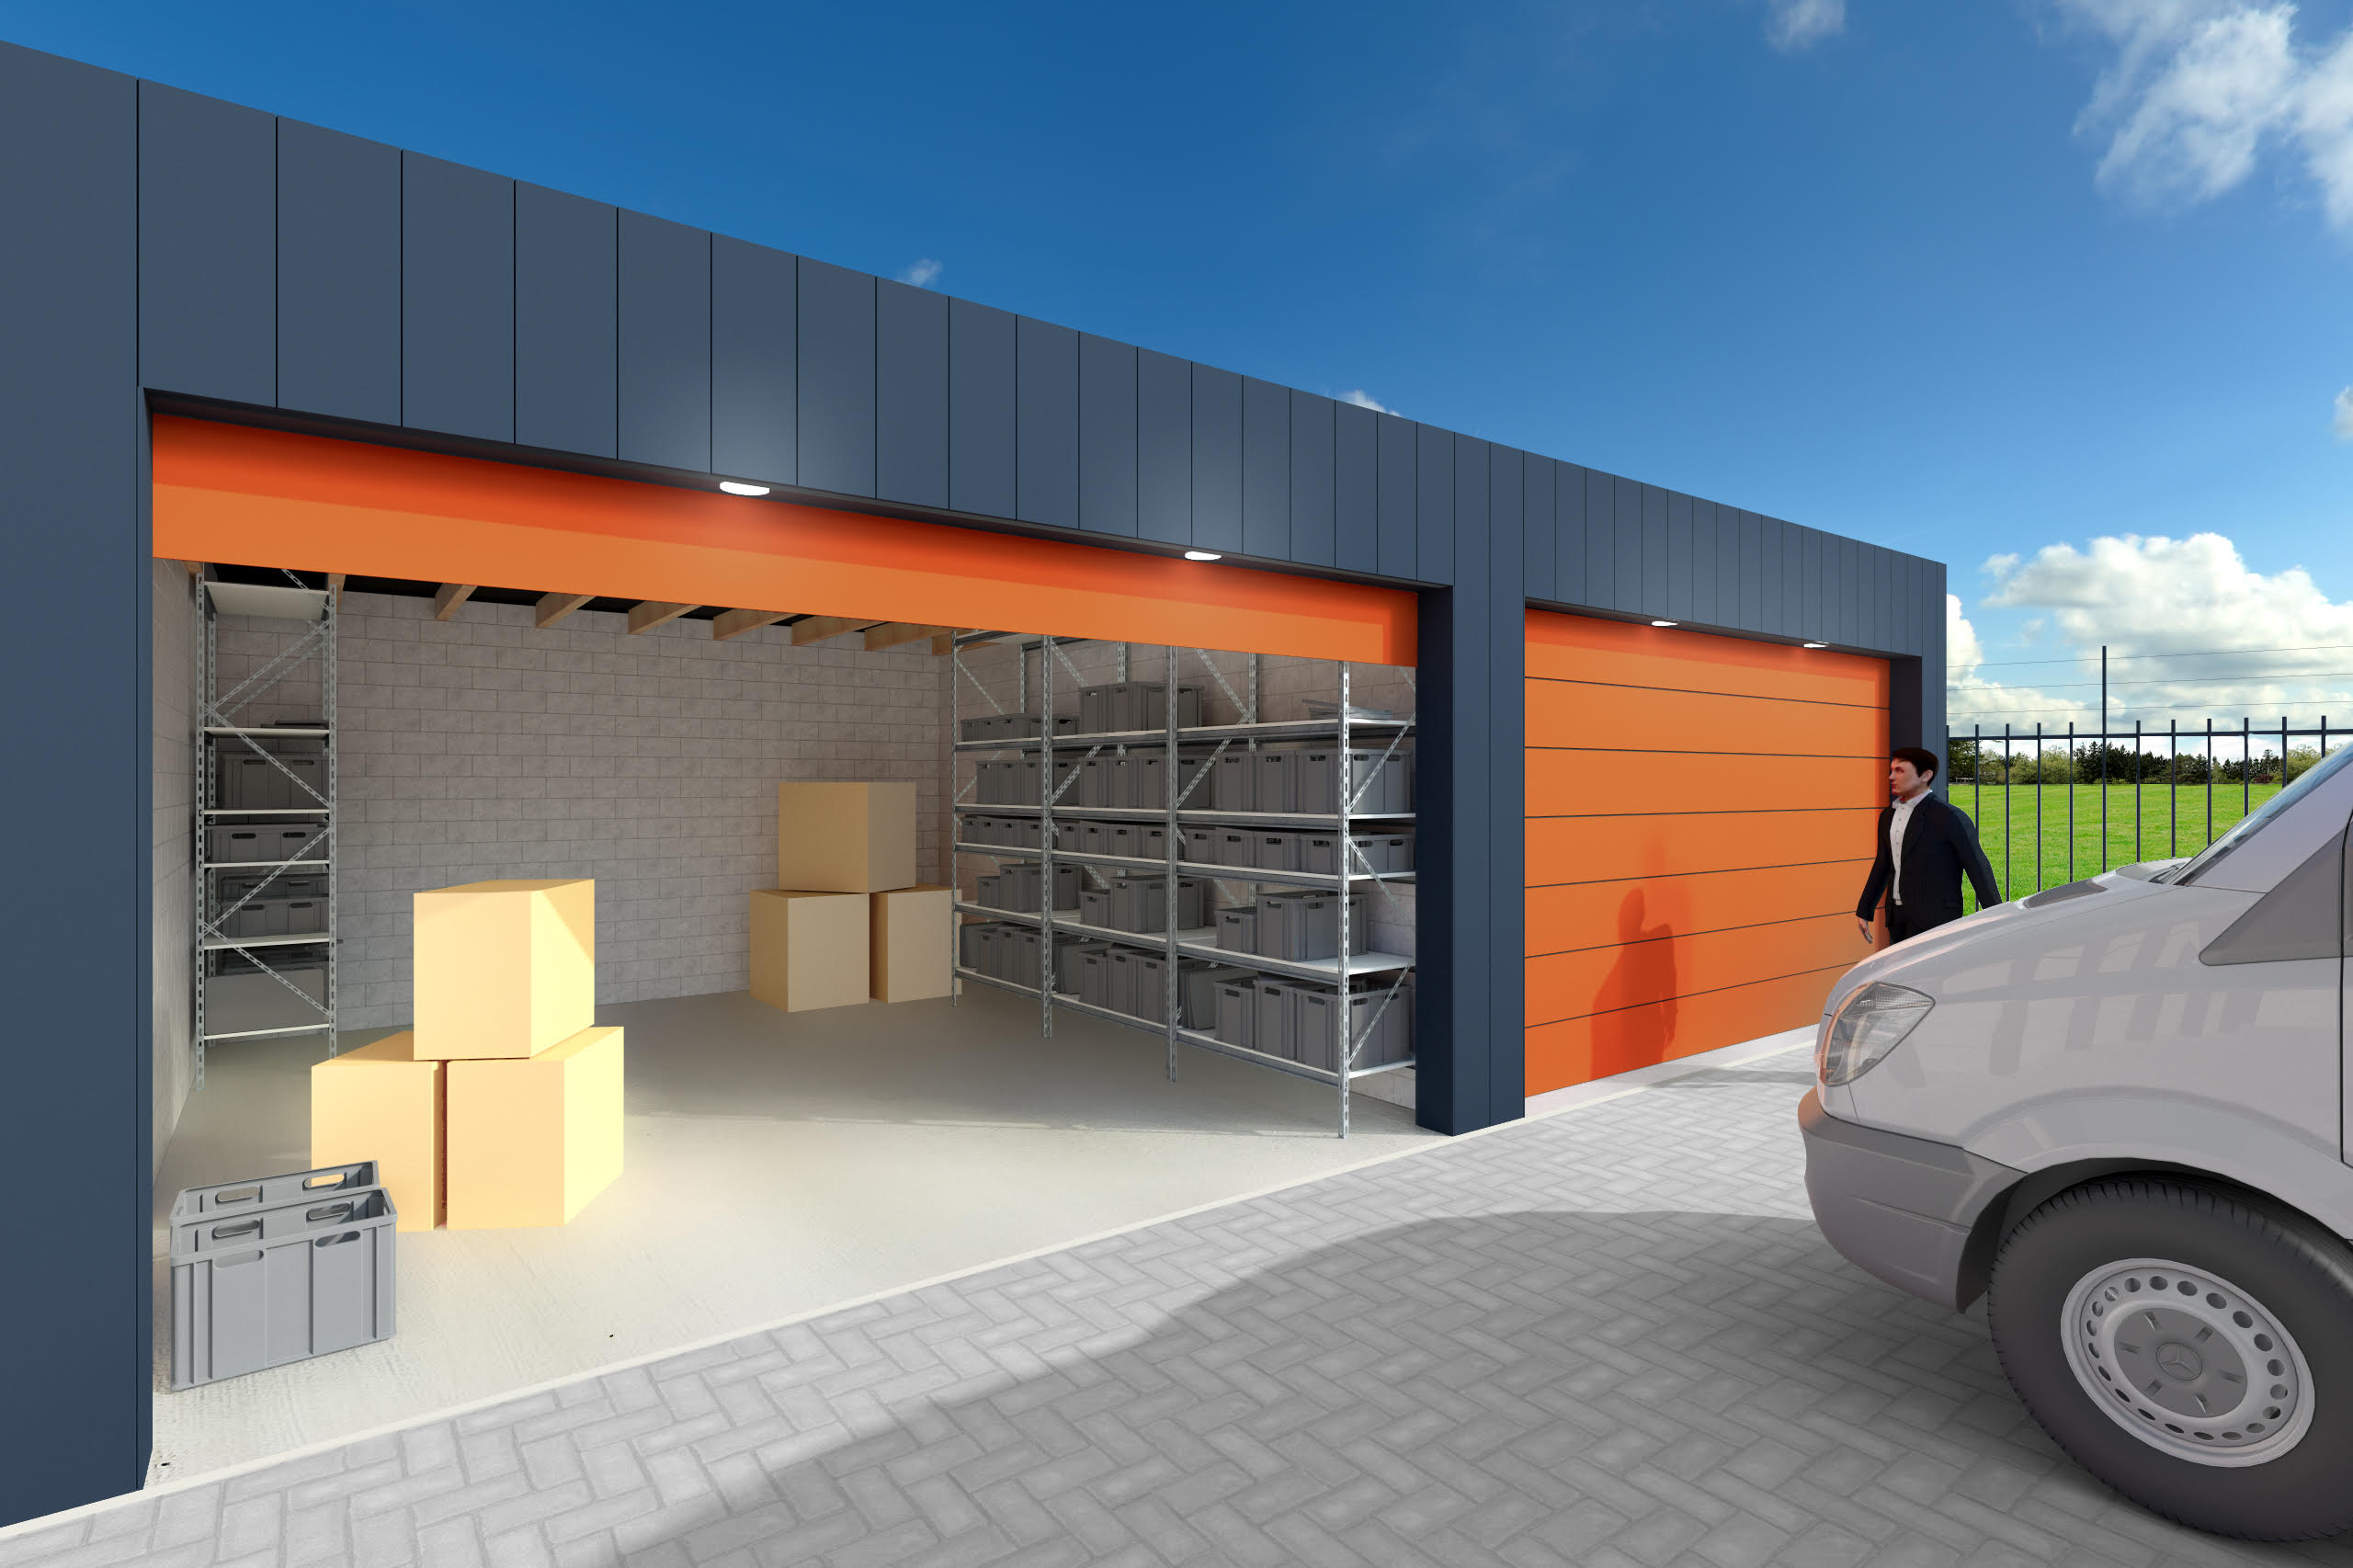 For rent garageboxes in Rotterdam (Hillegersberg) north of the A20.